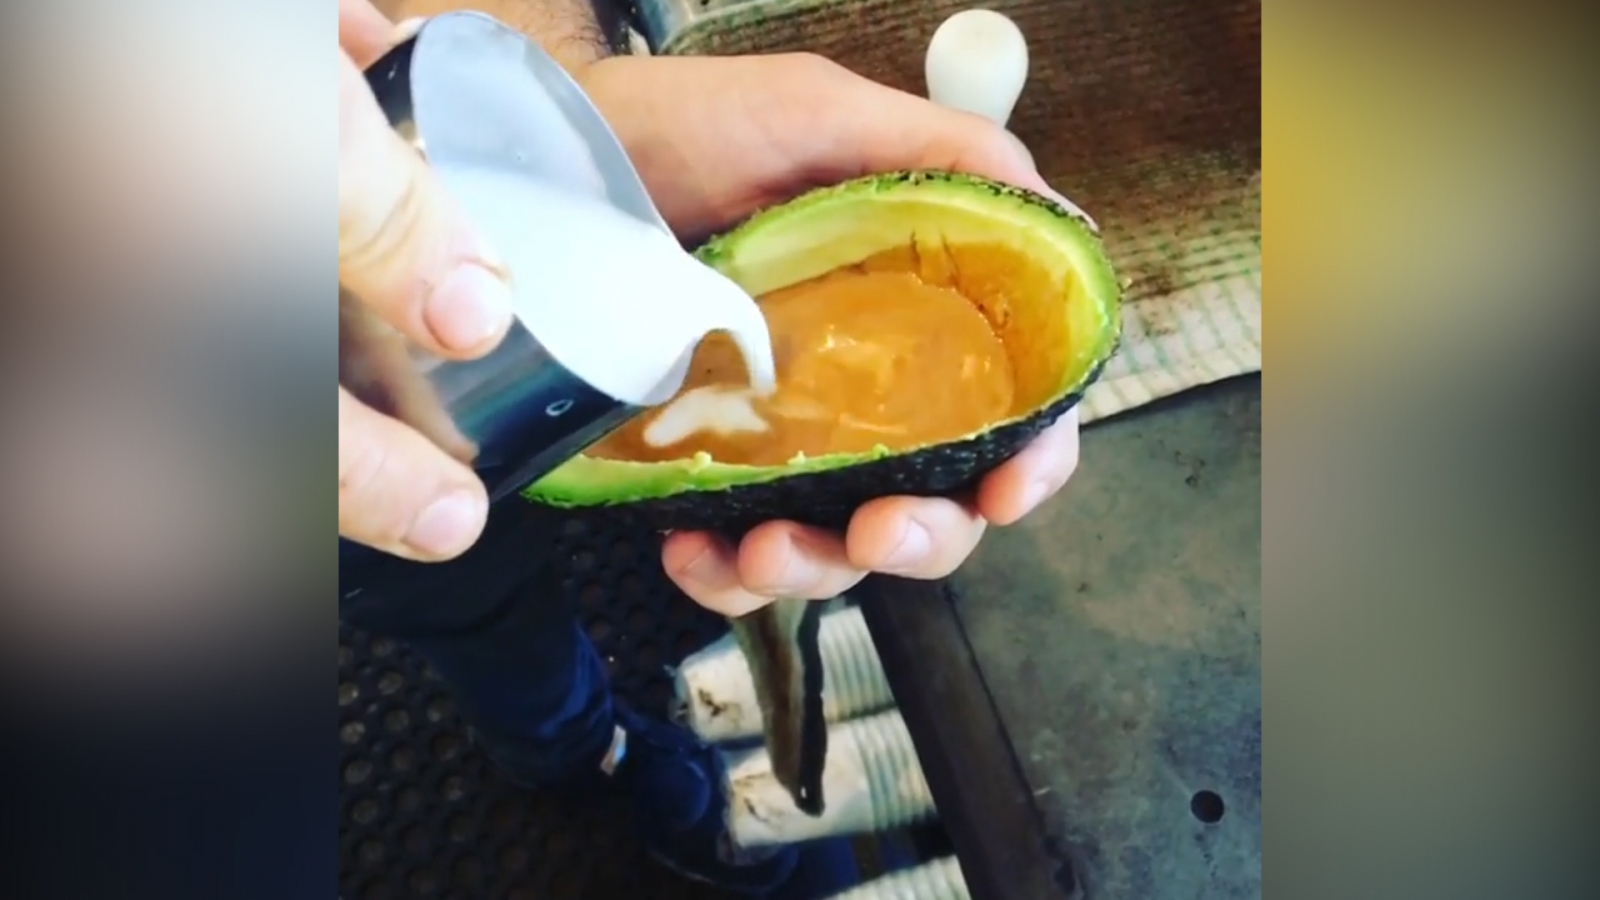 avo-lattes-take-internet-by-storm-in-newest-hipster-craze